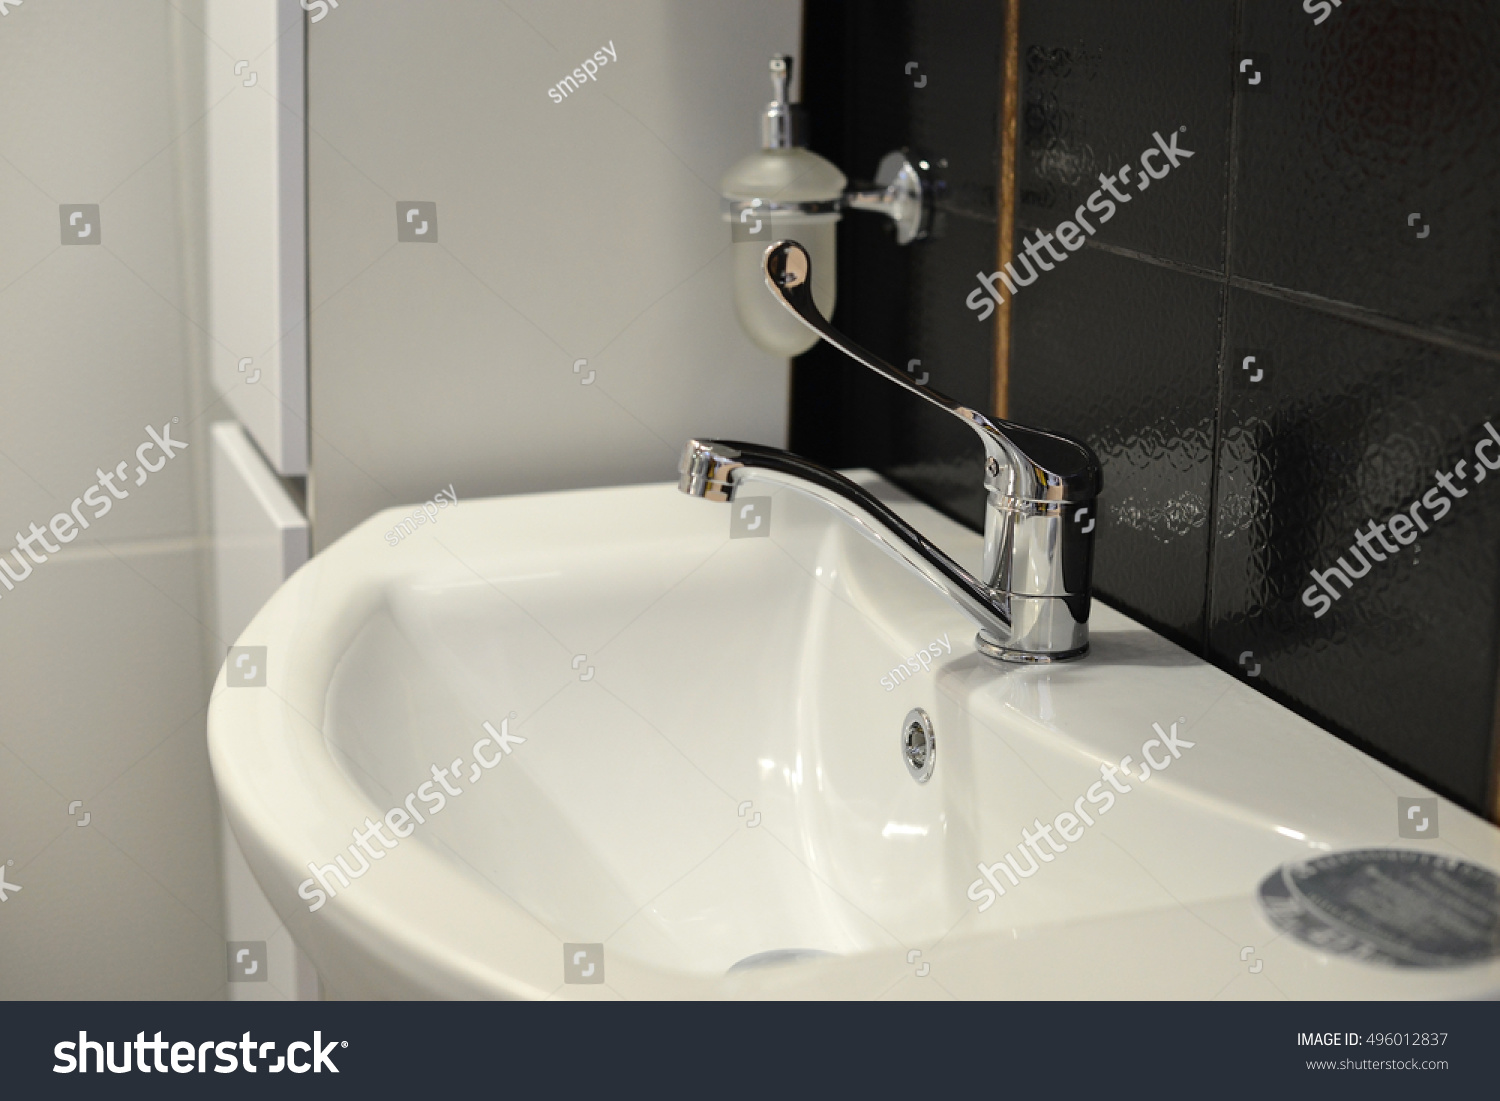 Bathroom tap with water. | EZ Canvas